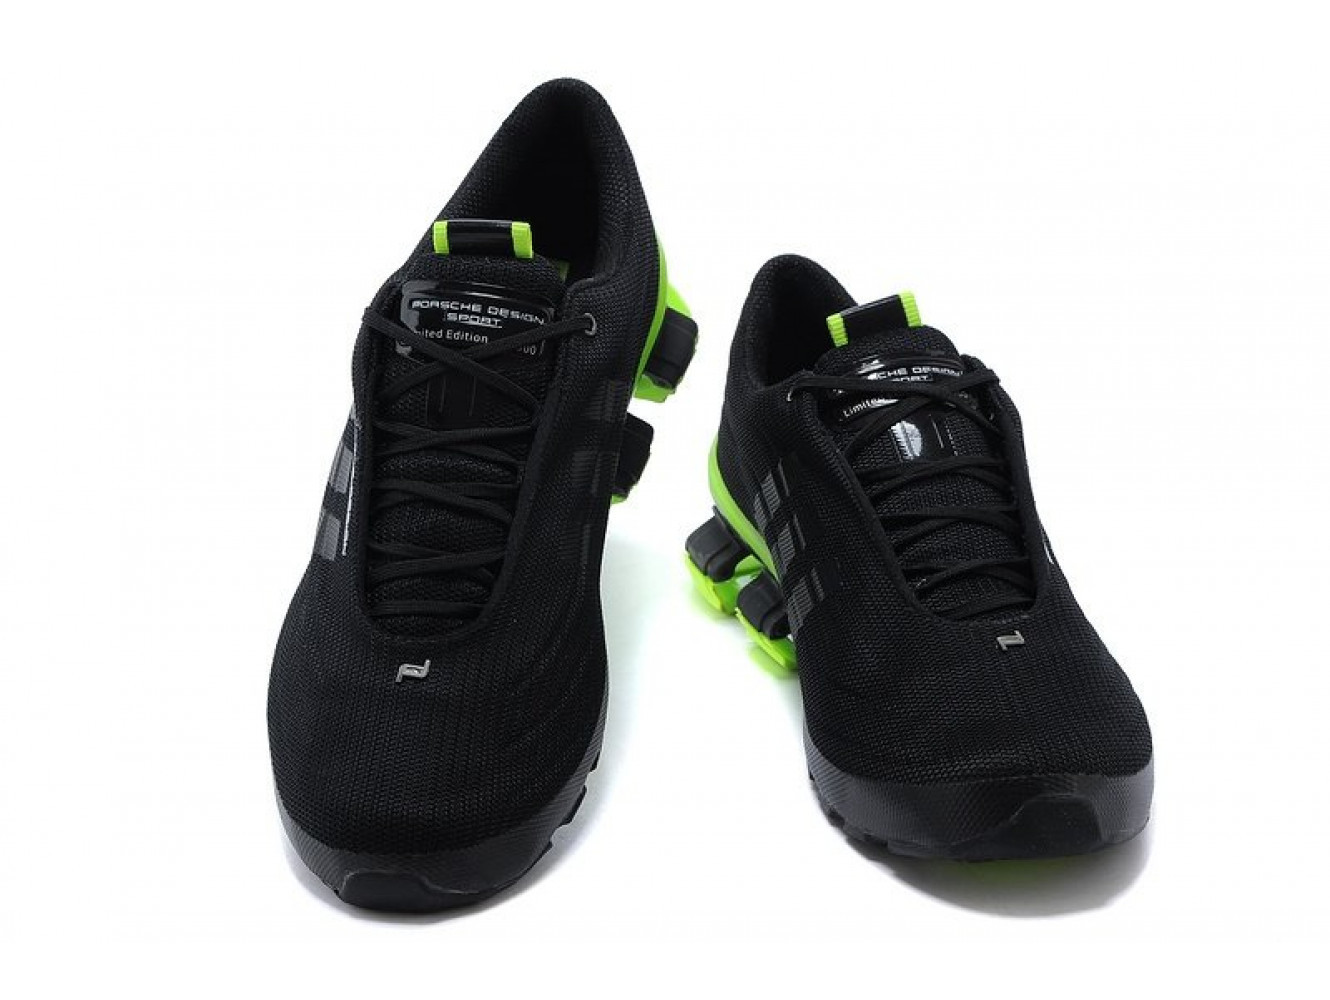 Adidas Porsche Design Bounce S4 (Black/Green) (004)